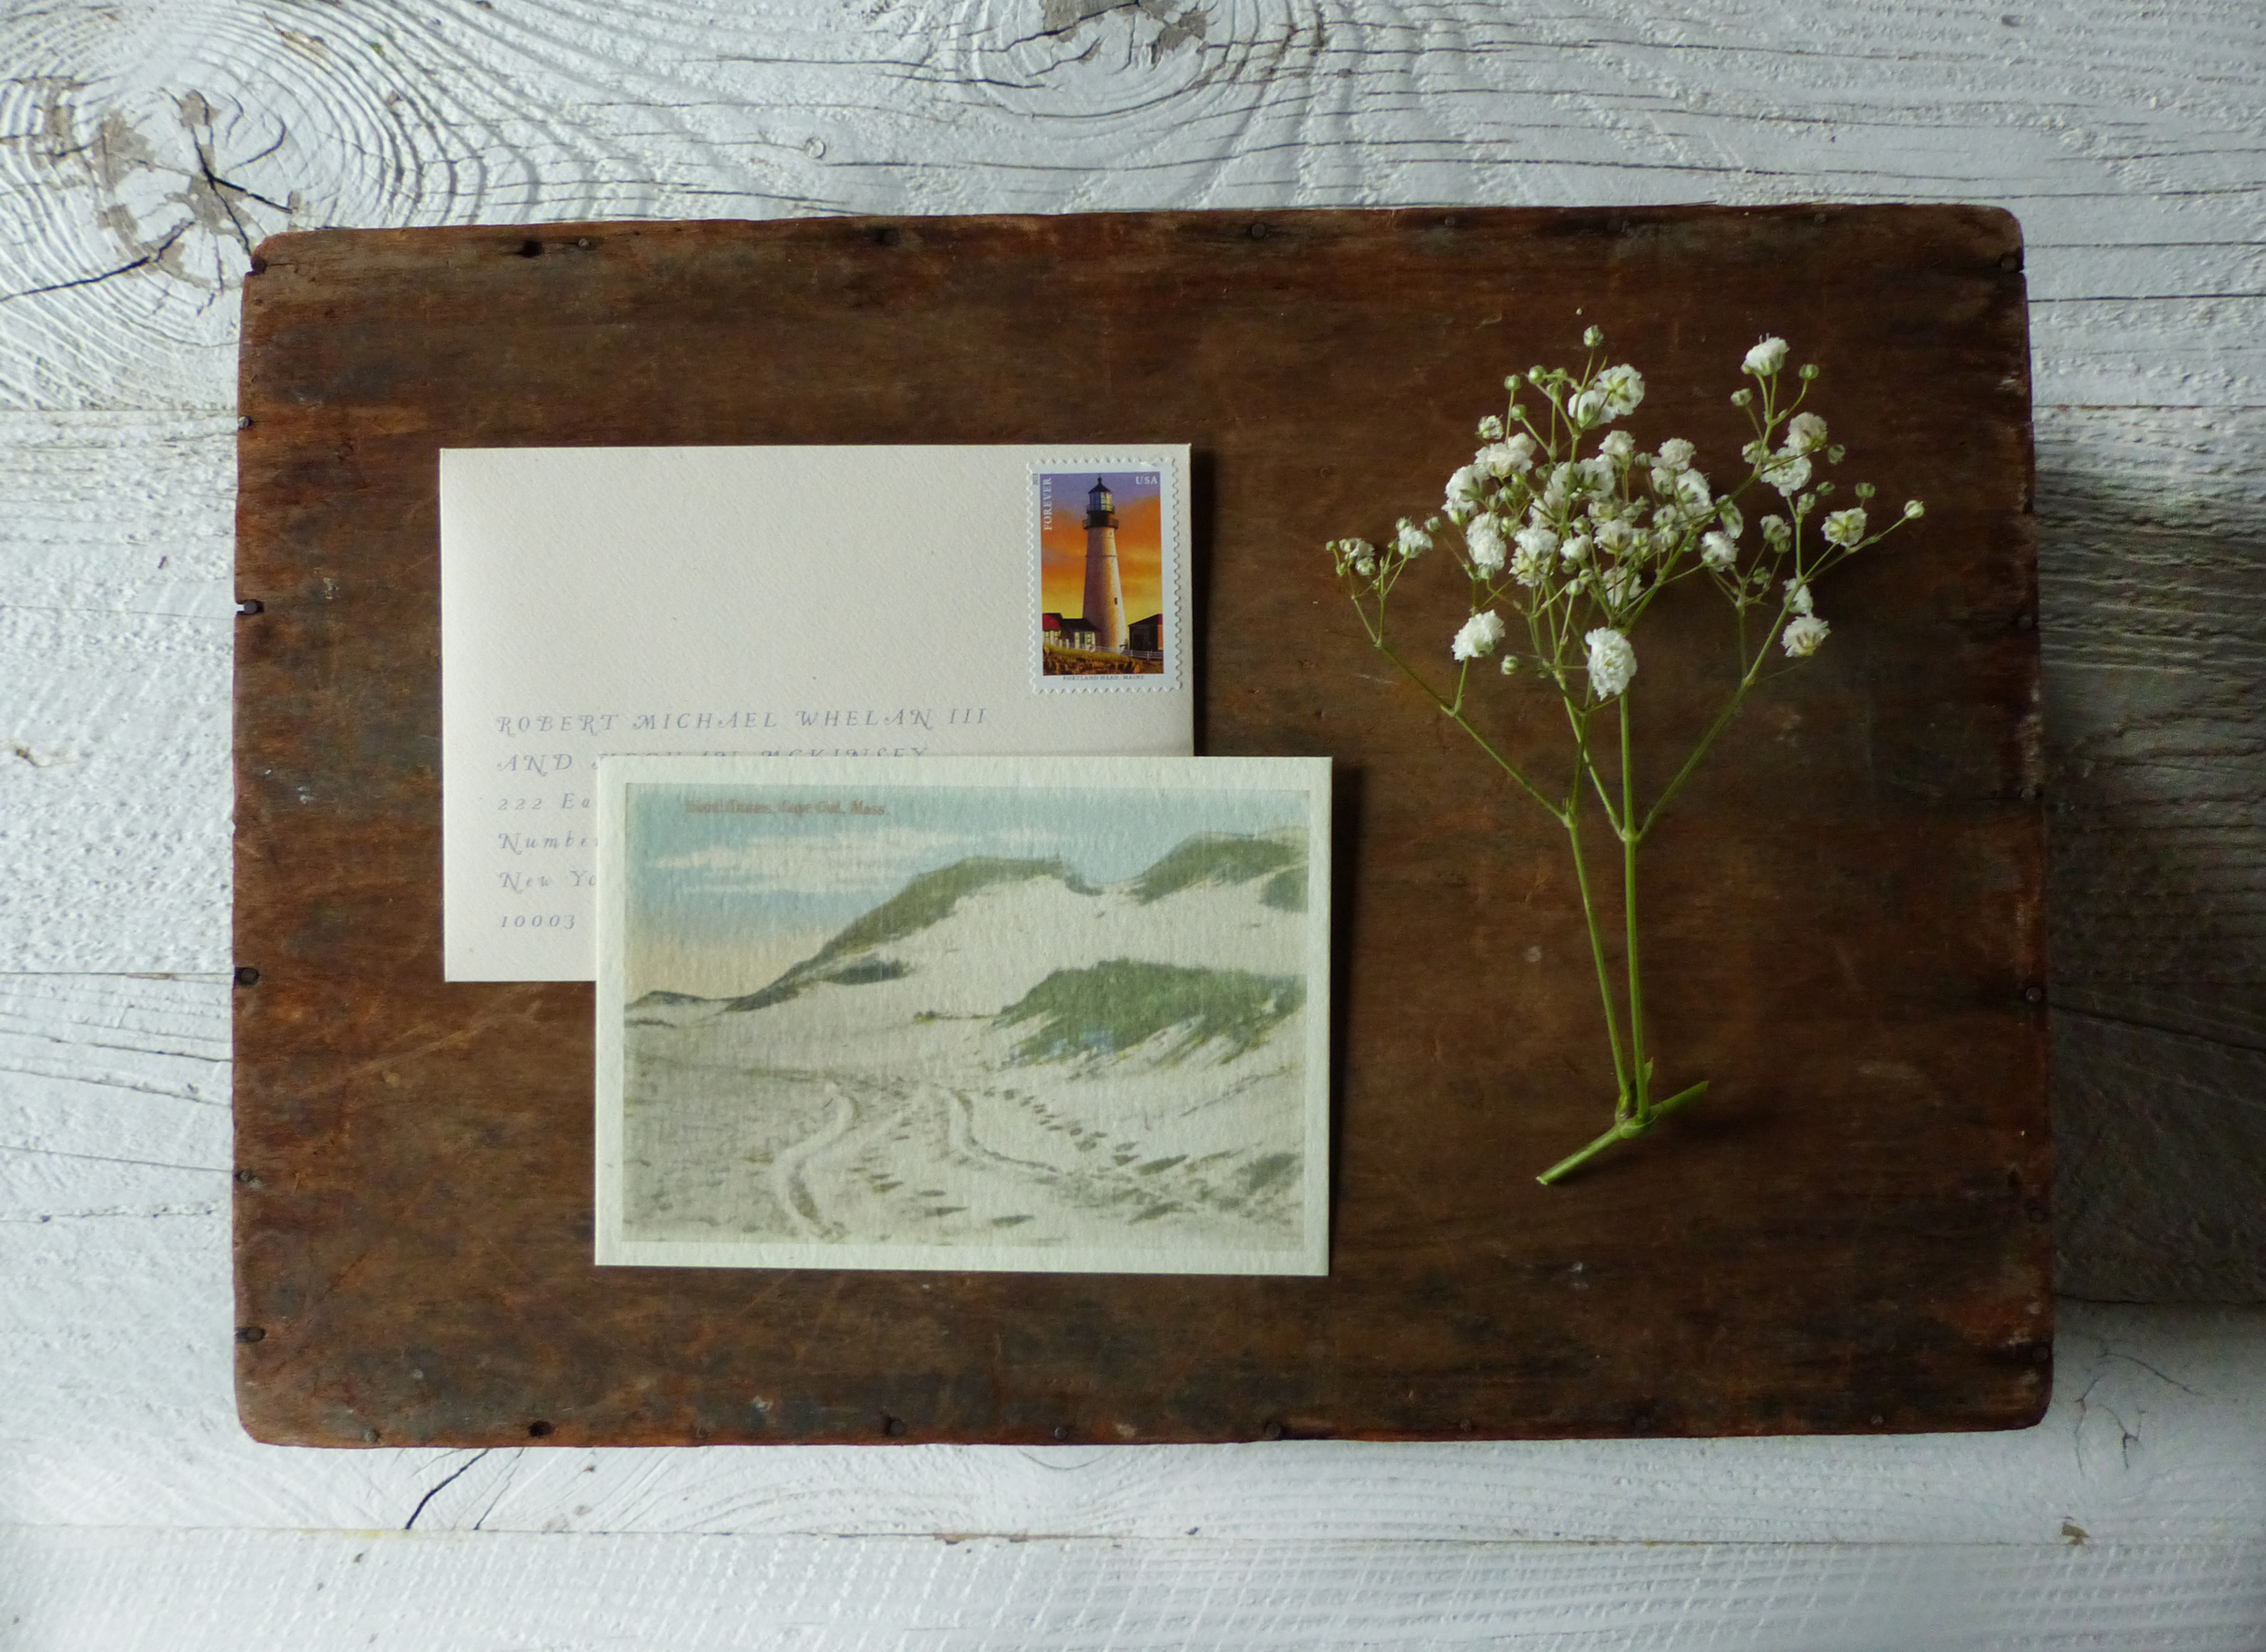 A vintage photo of the famous Cape Cod dunes was printed on the back of the reply card, with a perfectly pink sand reply envelope.